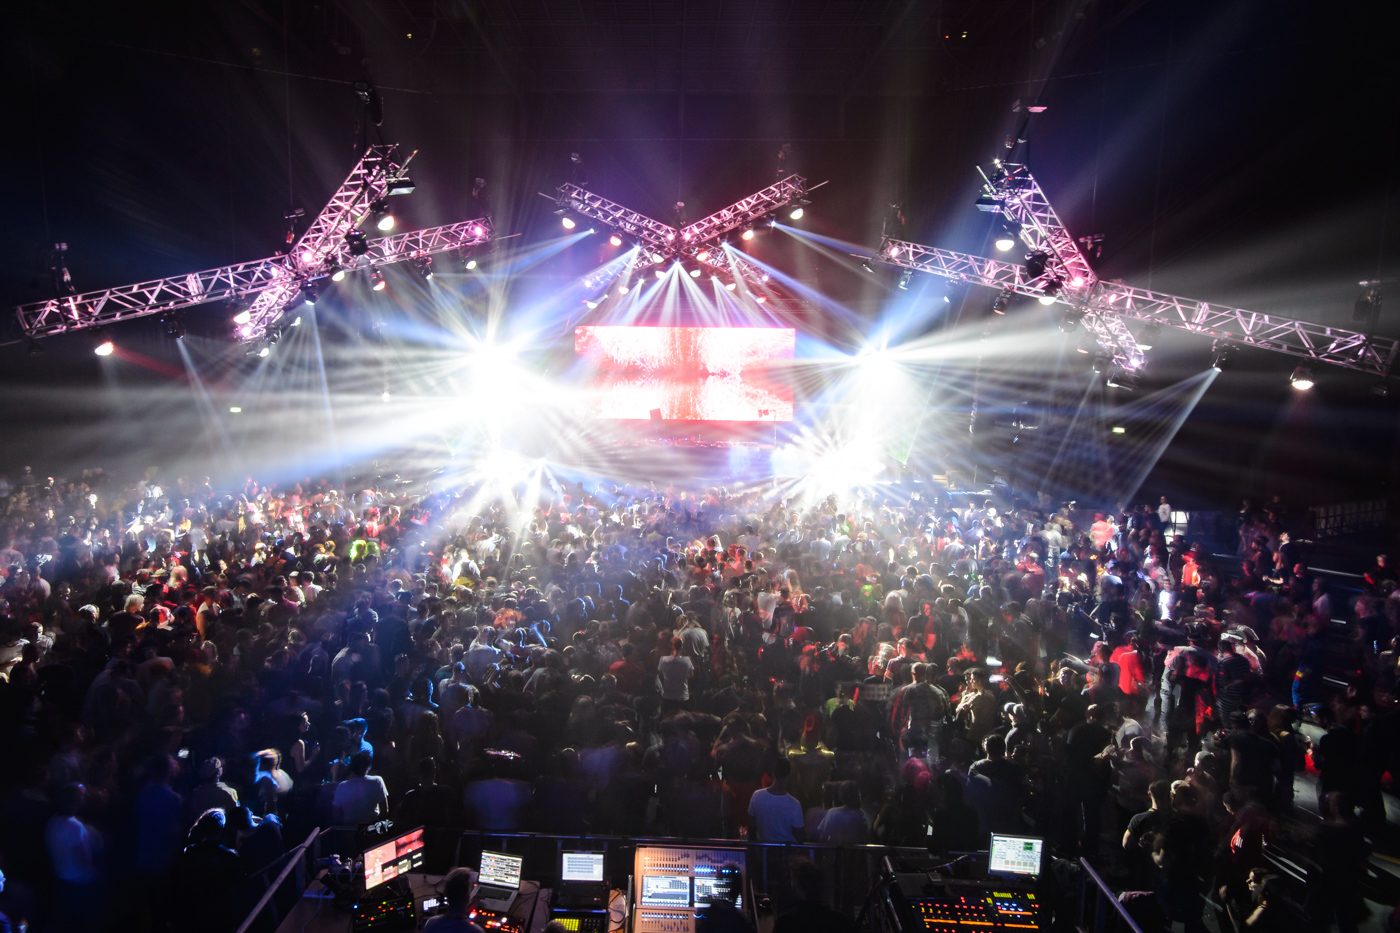 winterparty-at-3arena-dublin-30-10-2016-by-sean-smyth-44-of-53